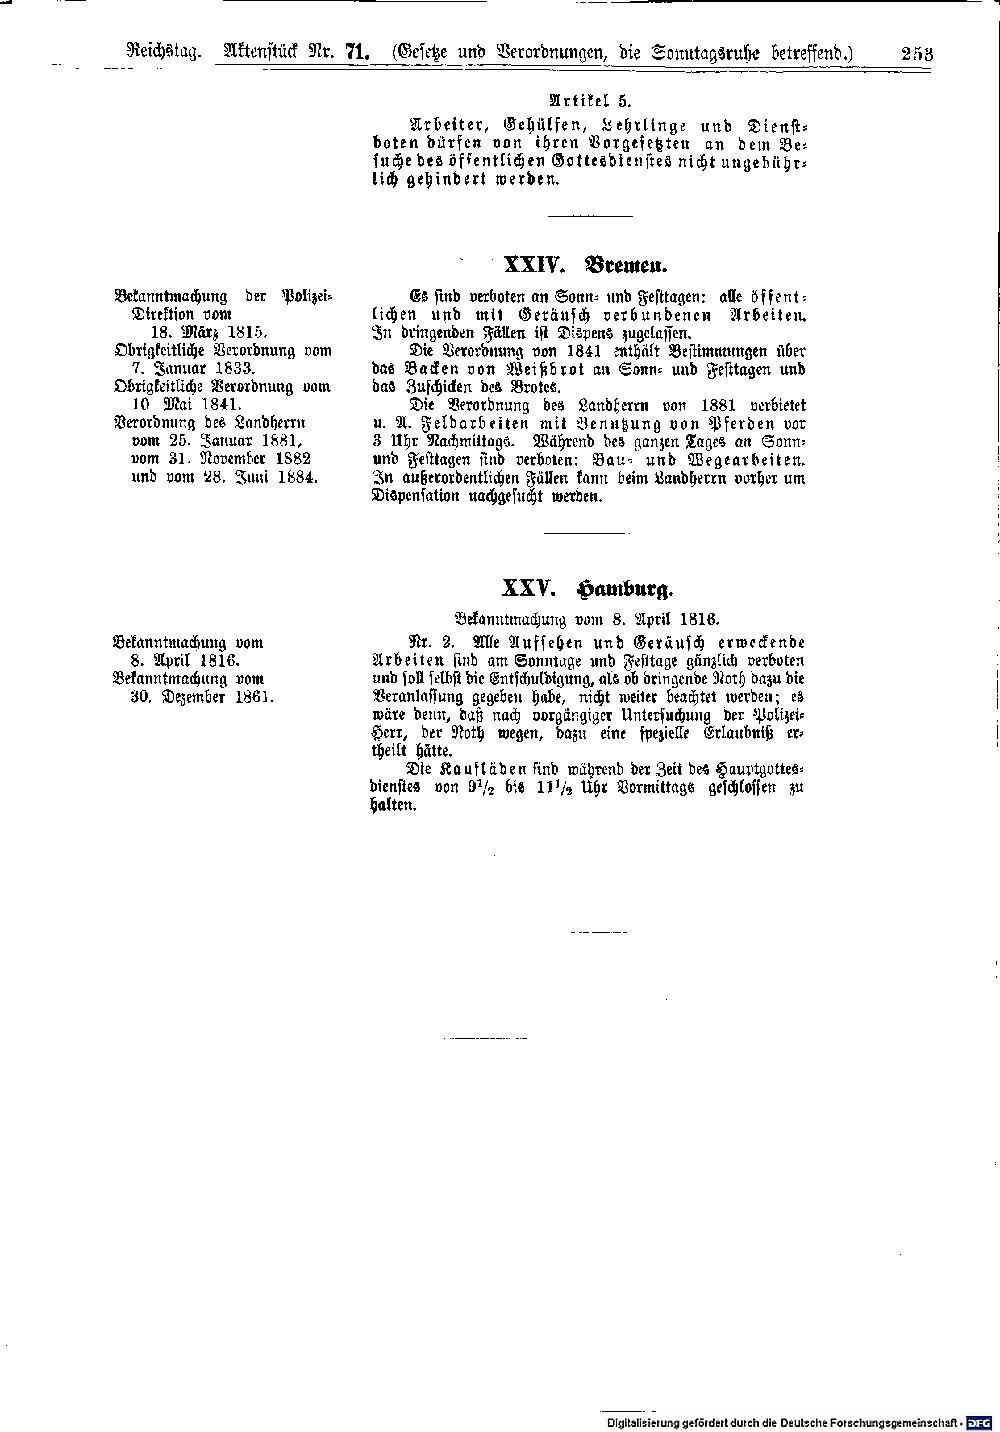 Scan of page 253